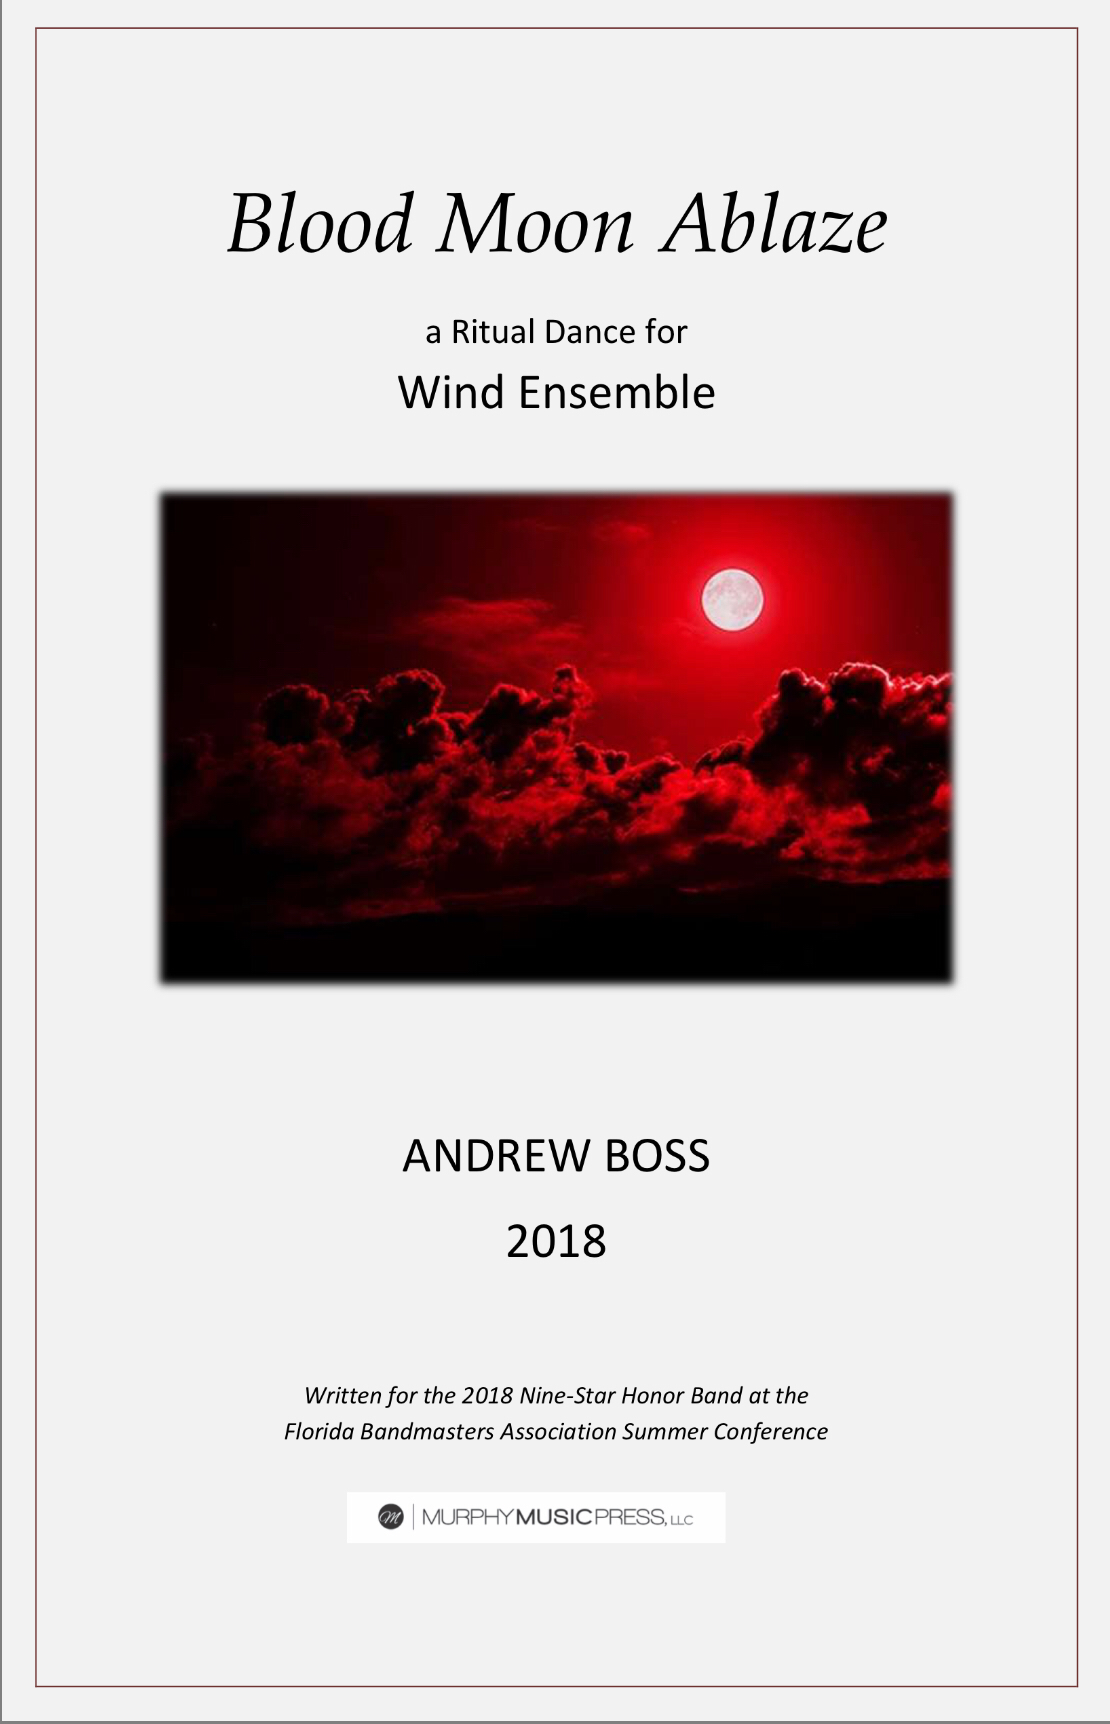 Blood Moon Ablaze (PDF Version) by Andrew Boss